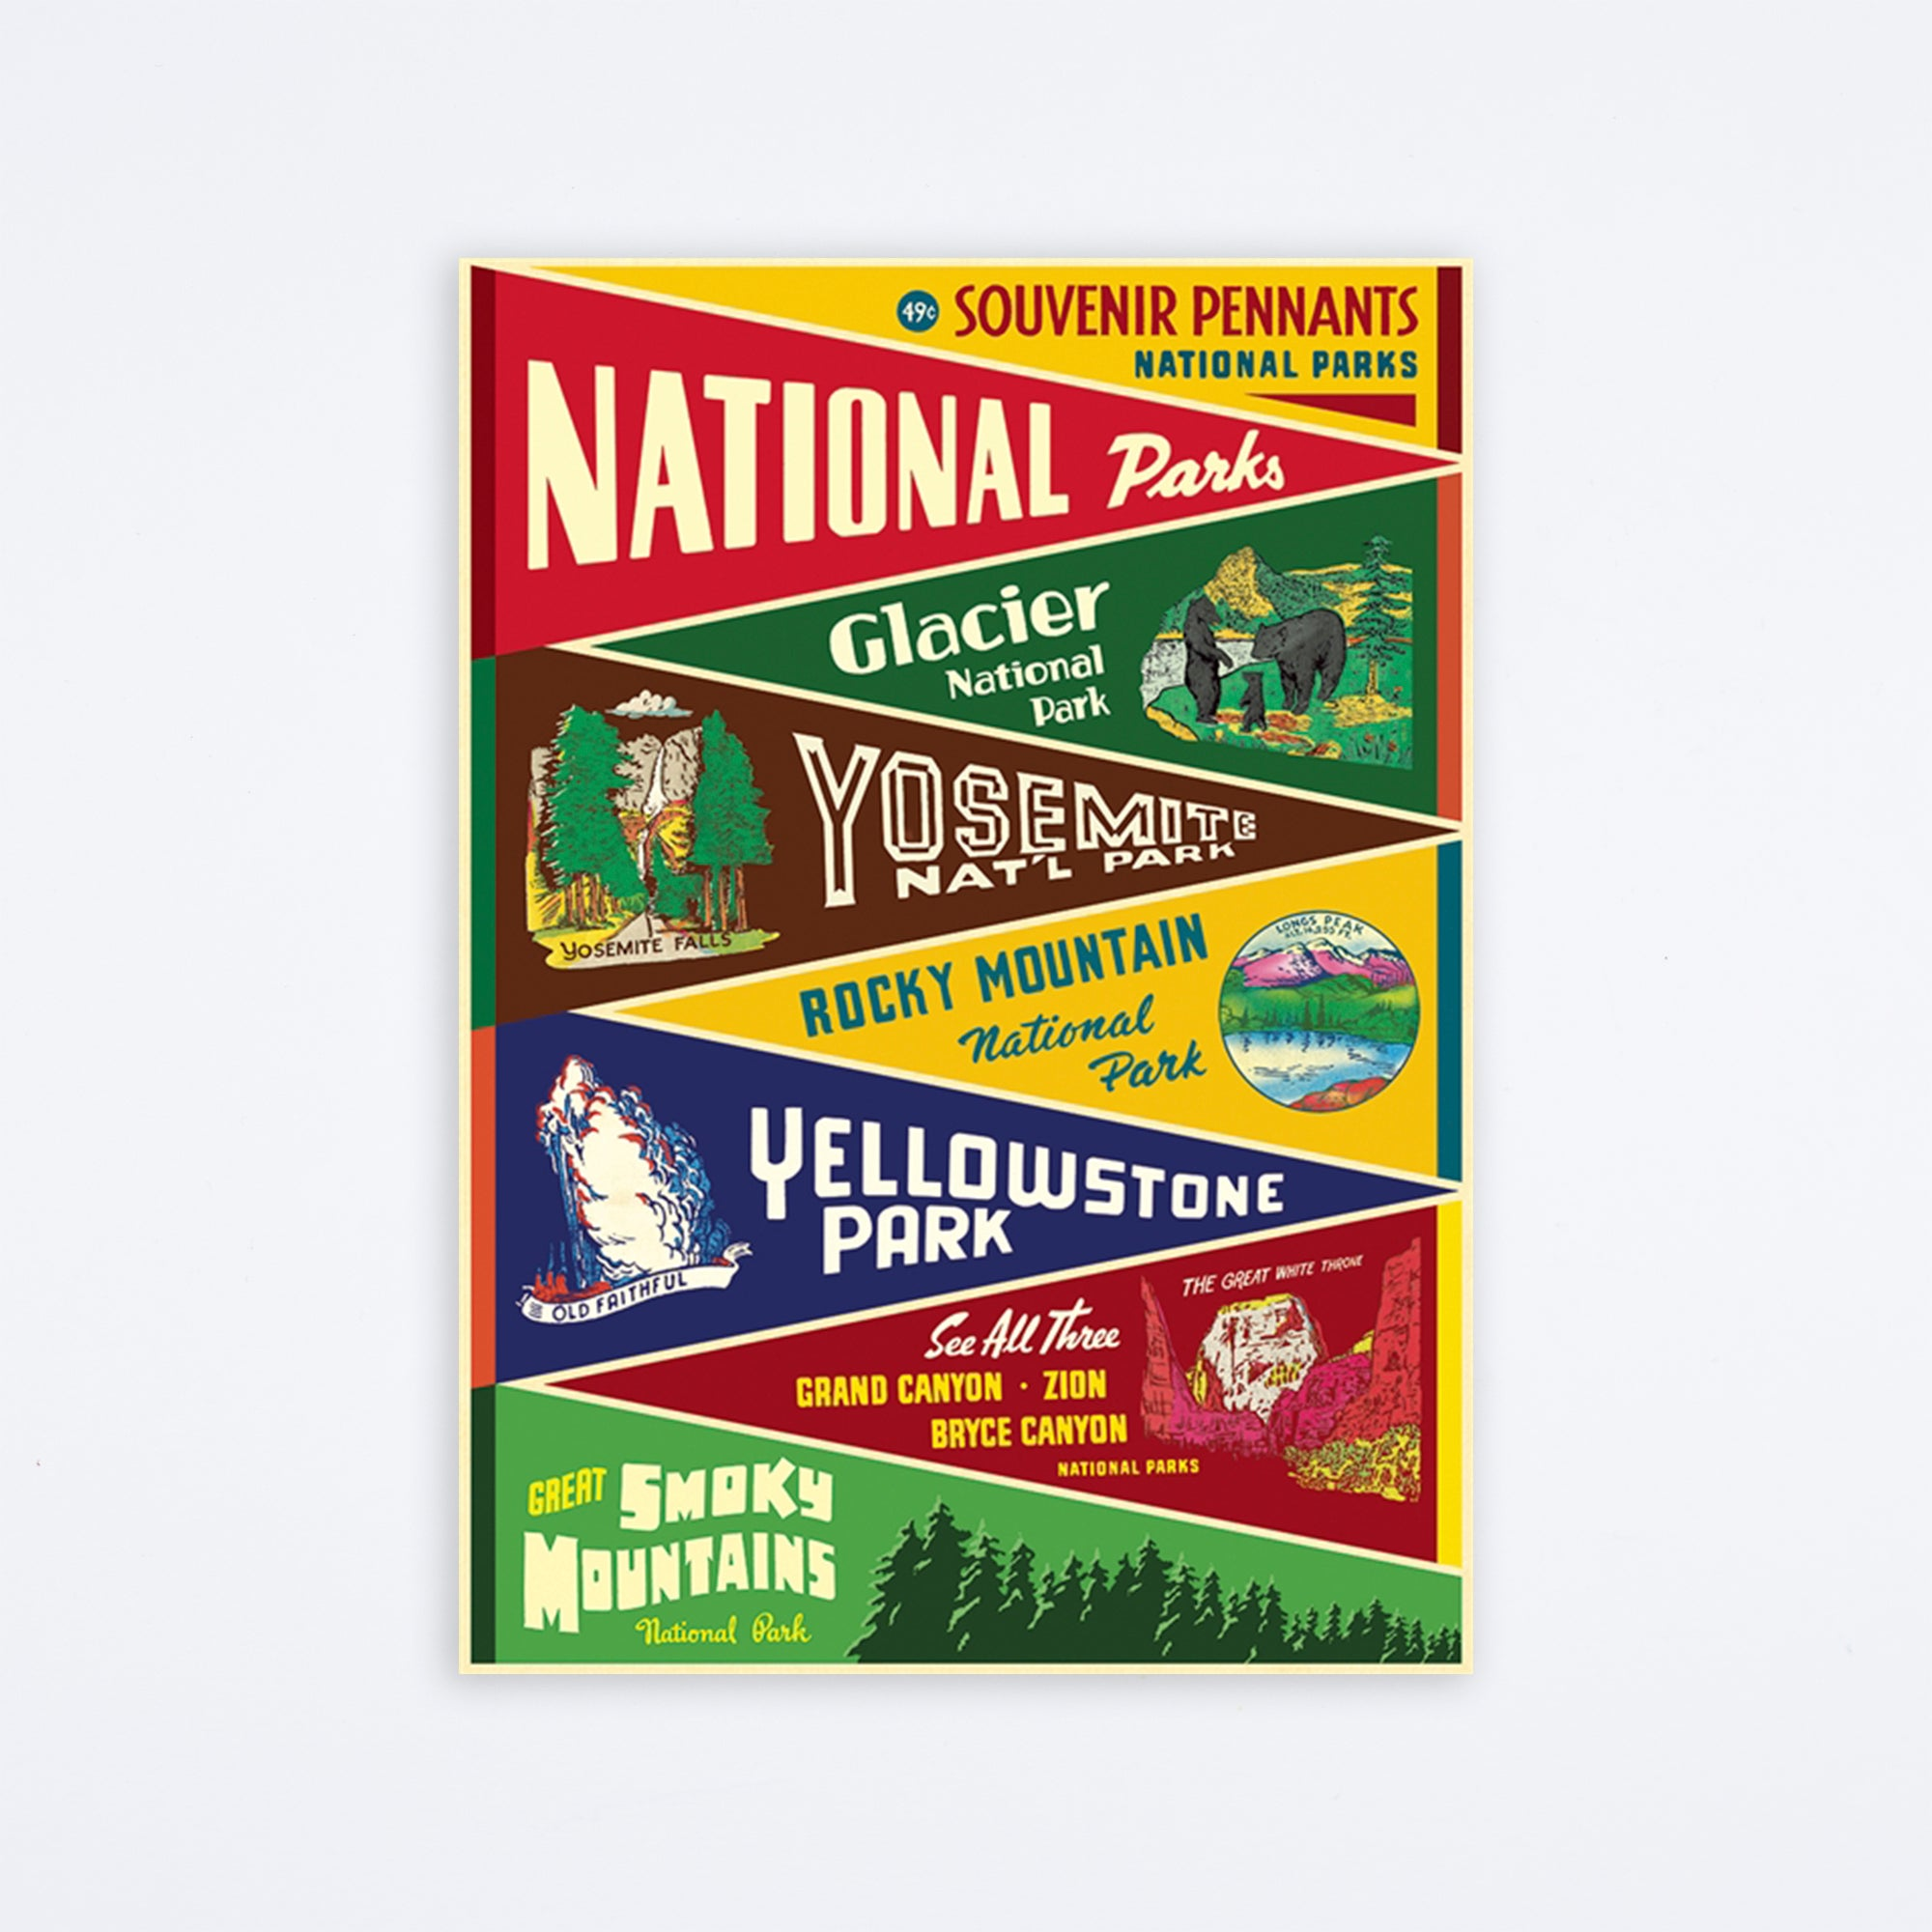 National Parks Pennants Wrap